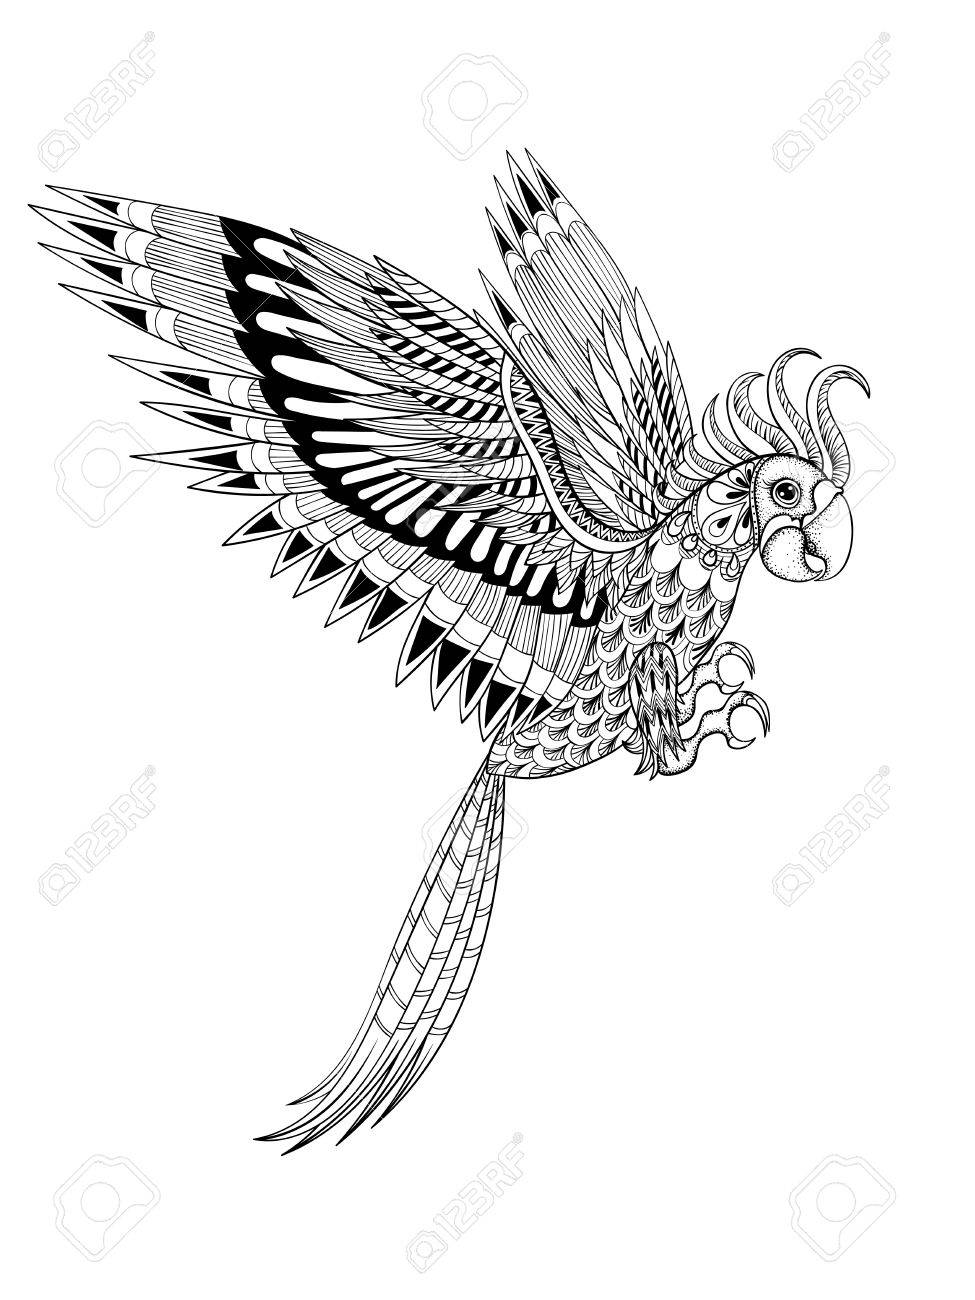 Hand drawn artistically ornamental tribal Parrot, bird totem for adult anti stress Coloring Page in zentangle style , illustration with high details isolated on white background. Vector sketch A4 size. - 51455585